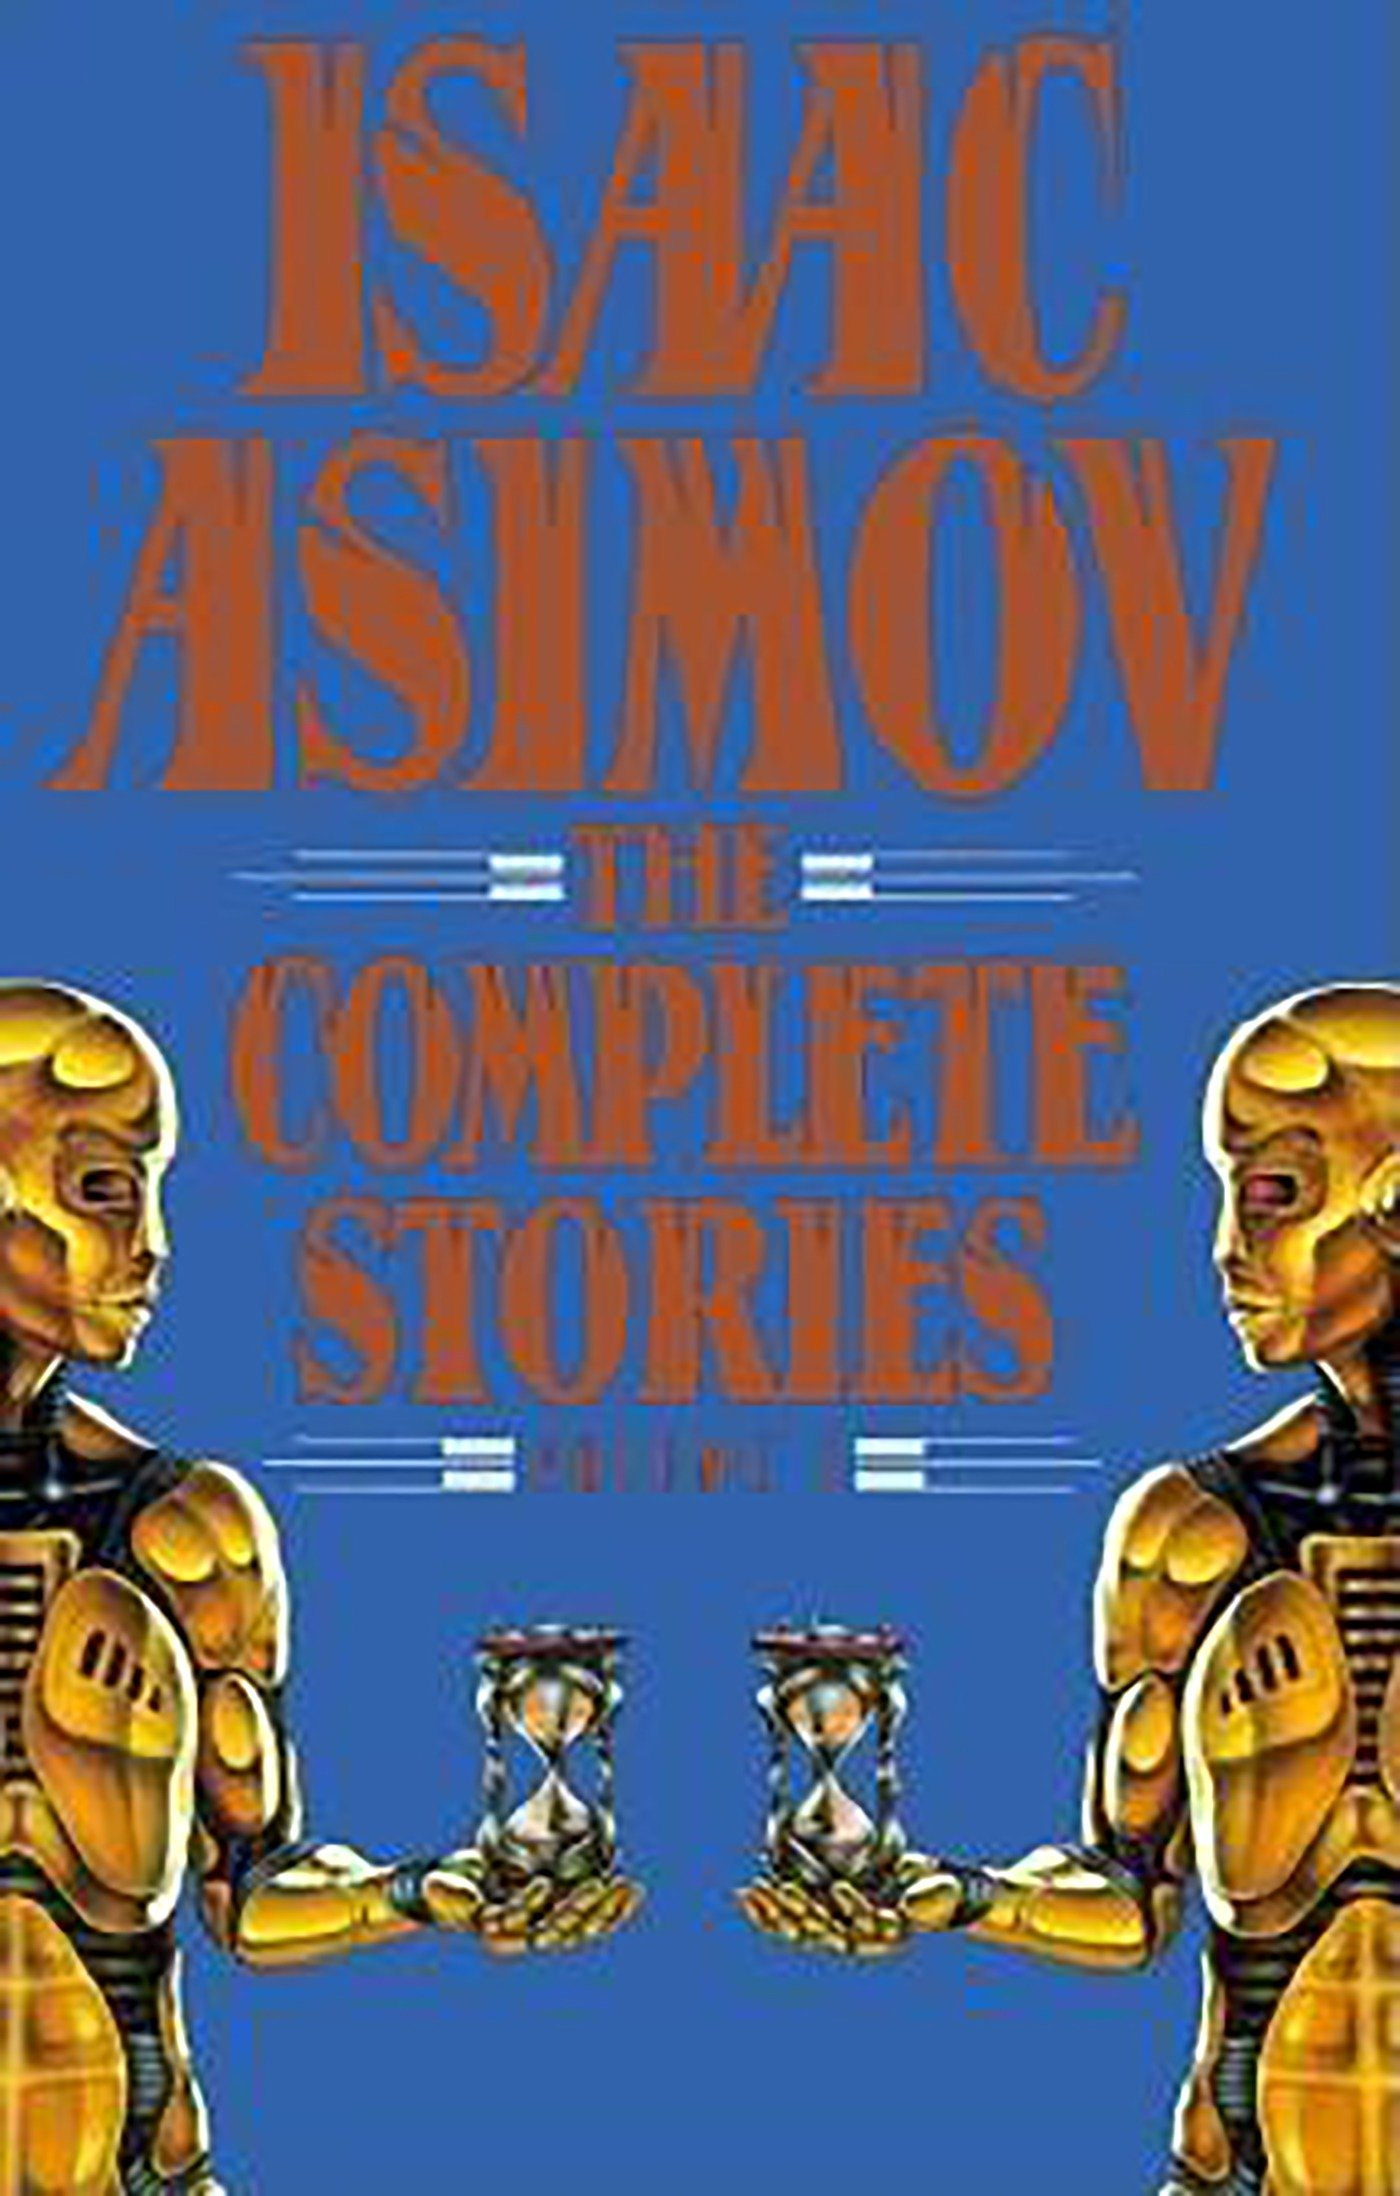 Isaac Asimov Short Stories Pdf